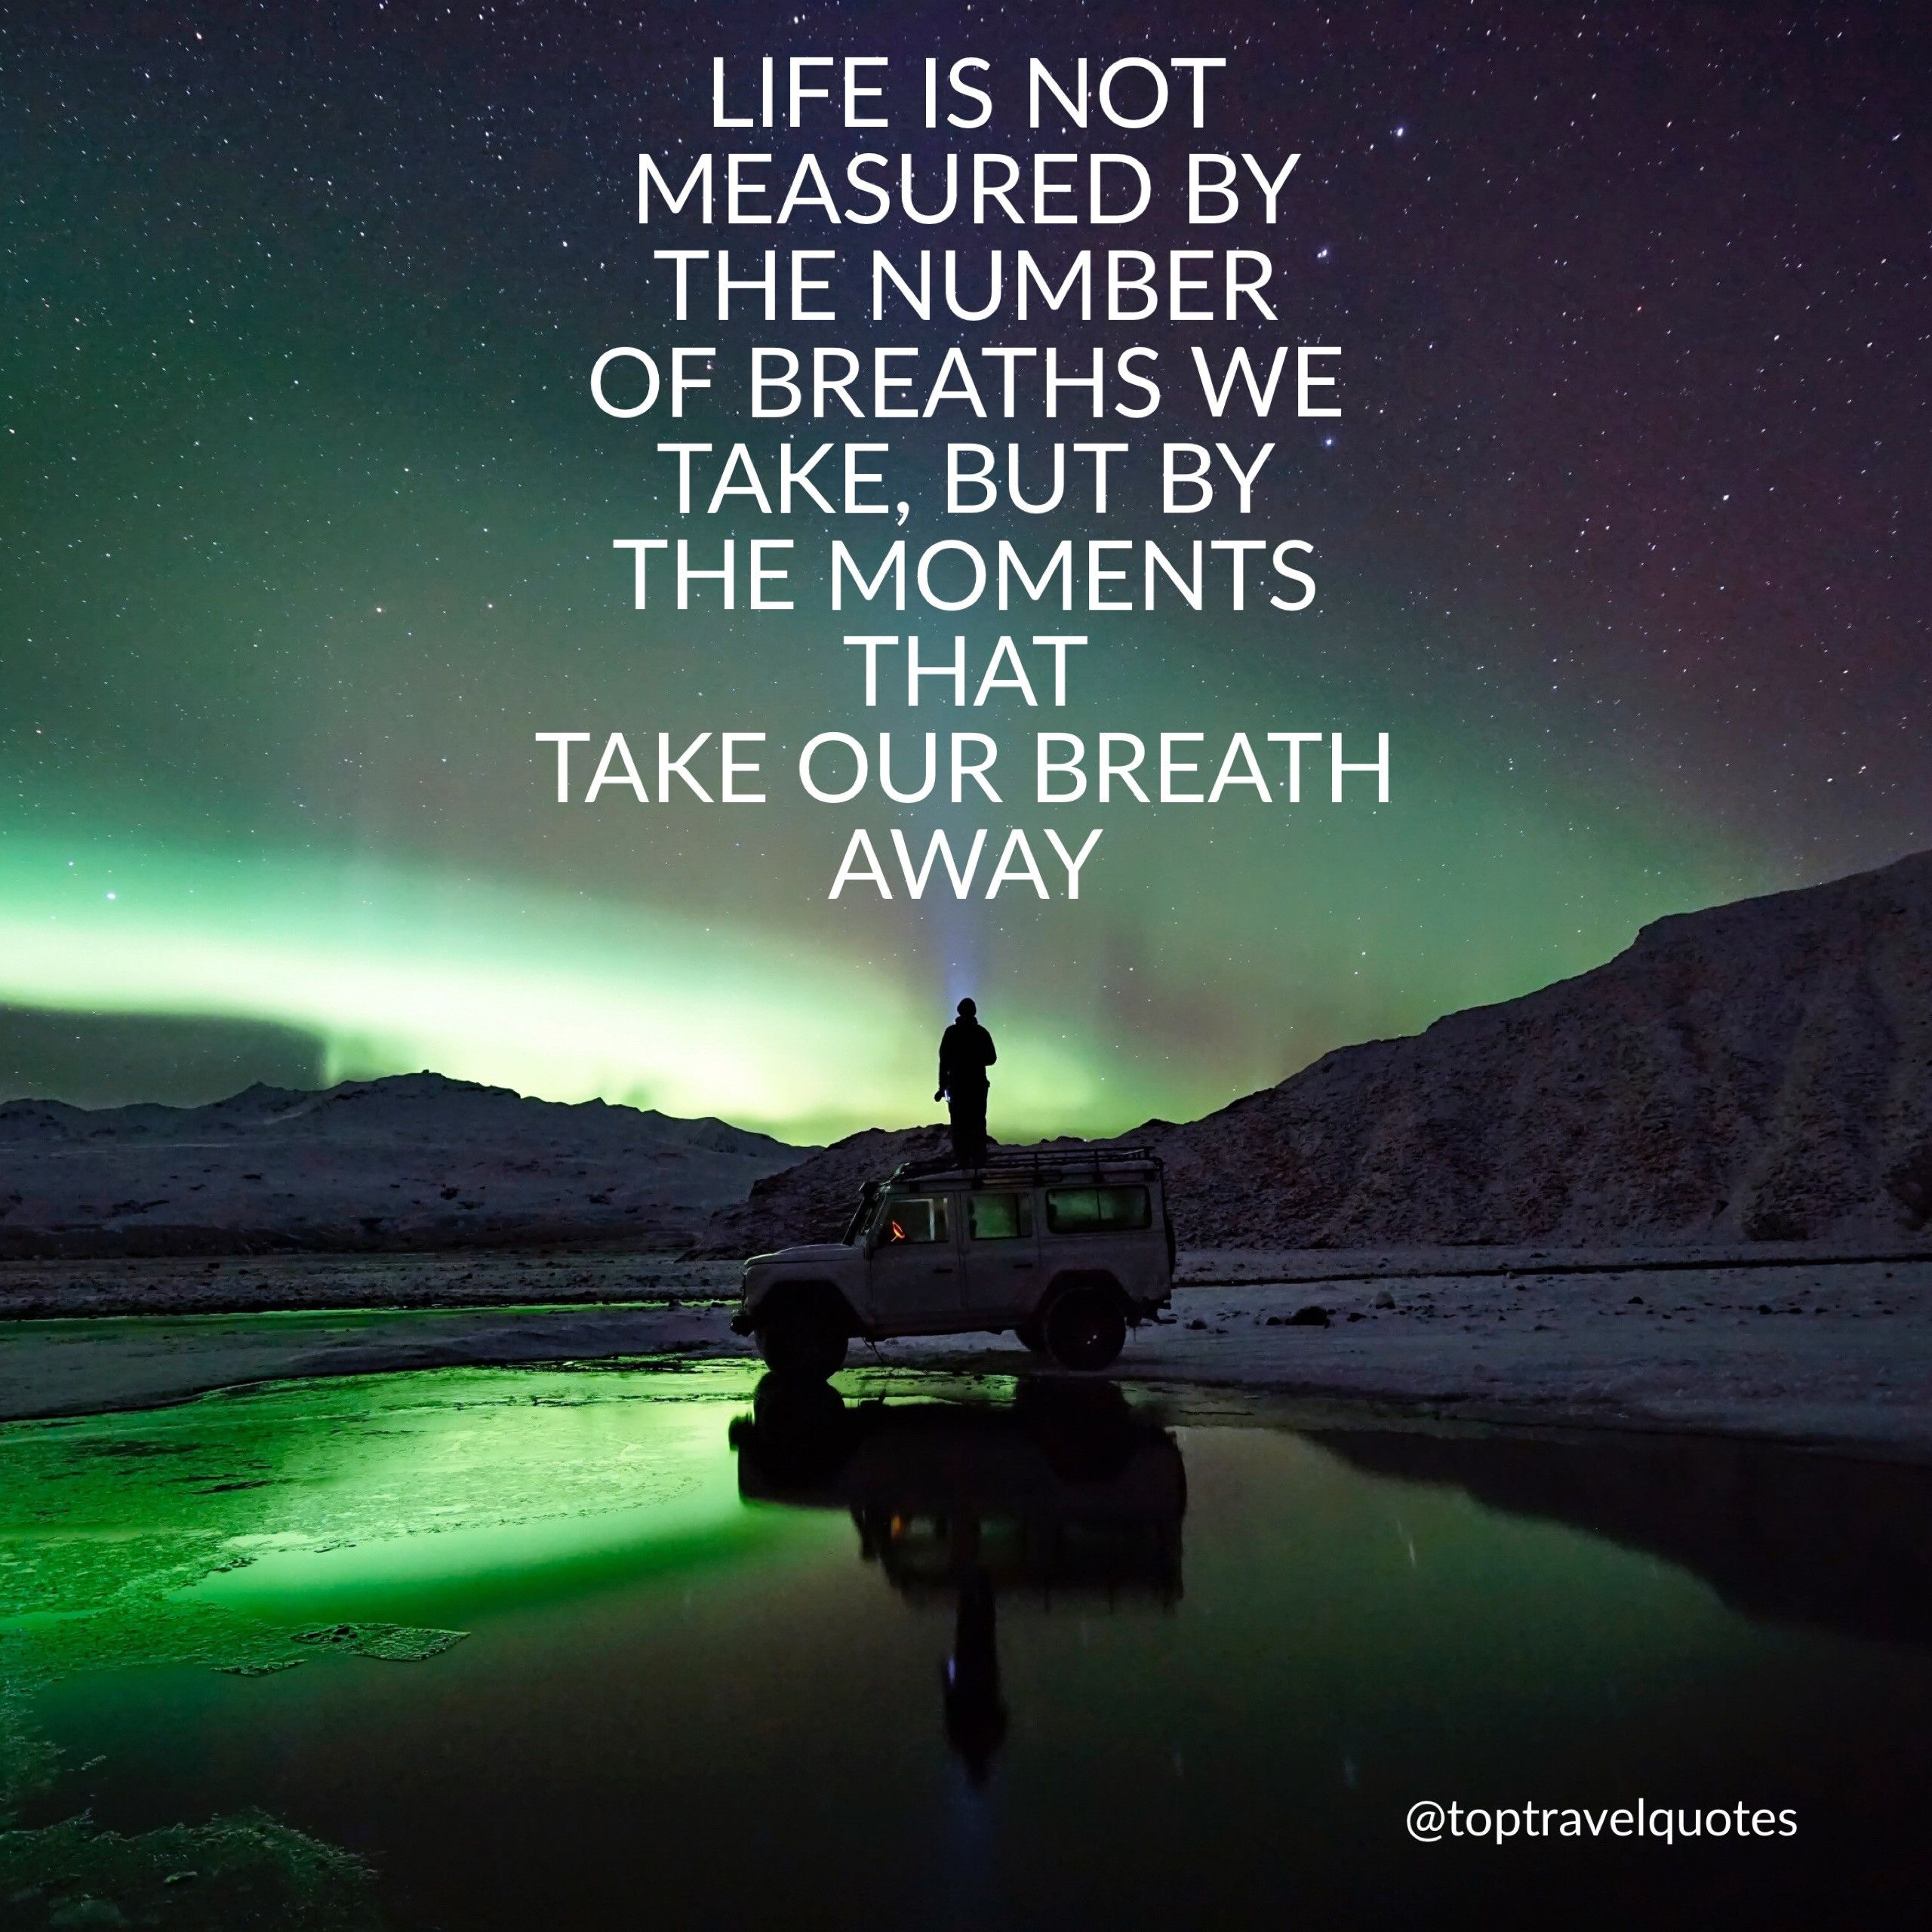 Life Is Not Measured By The Breaths Quote Life Is Not Measuredthe Number Of Breaths We Take Butthe